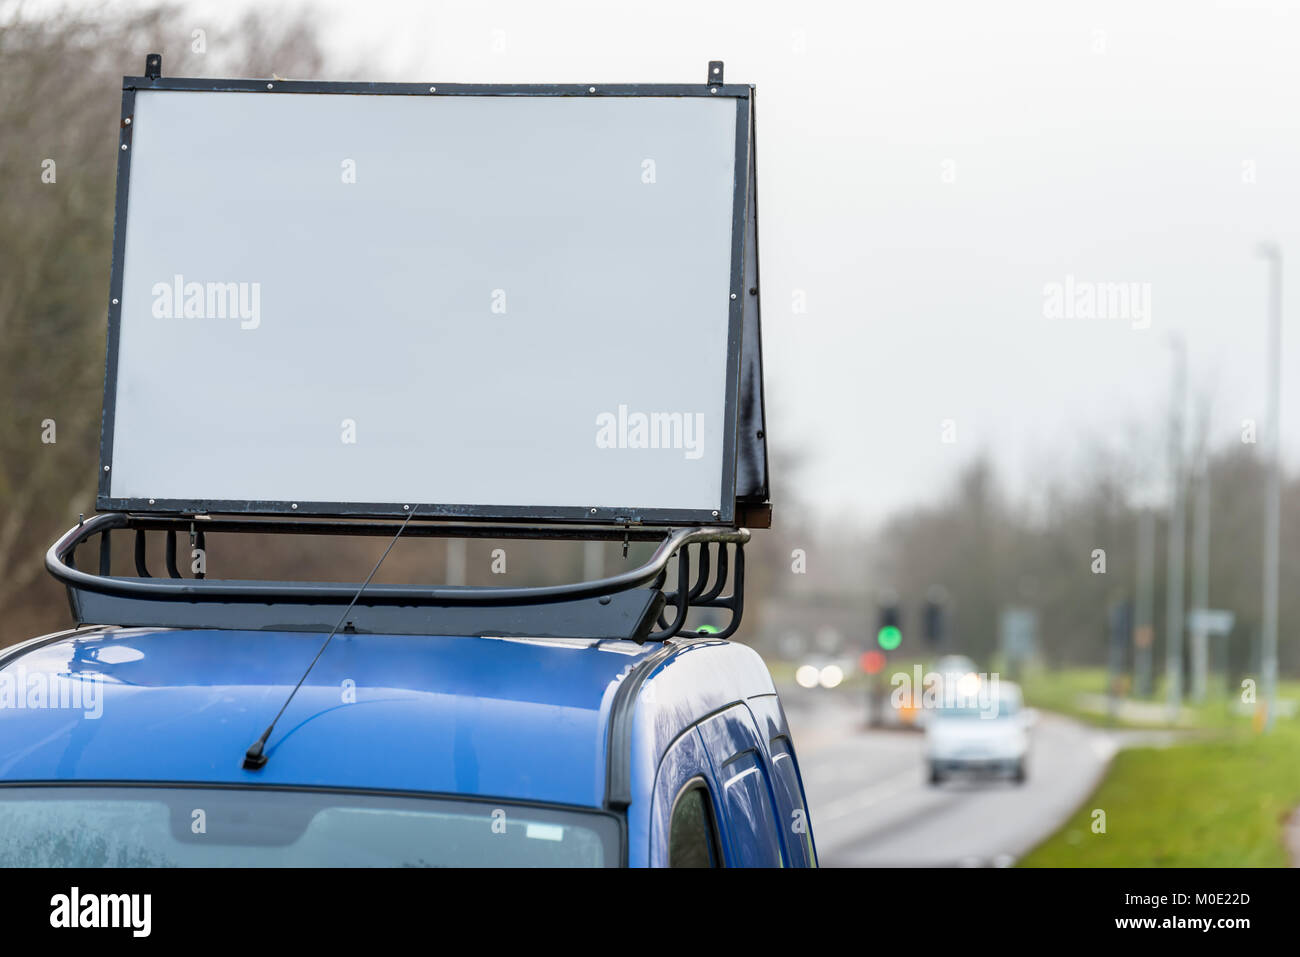 Advertising On Car Roof